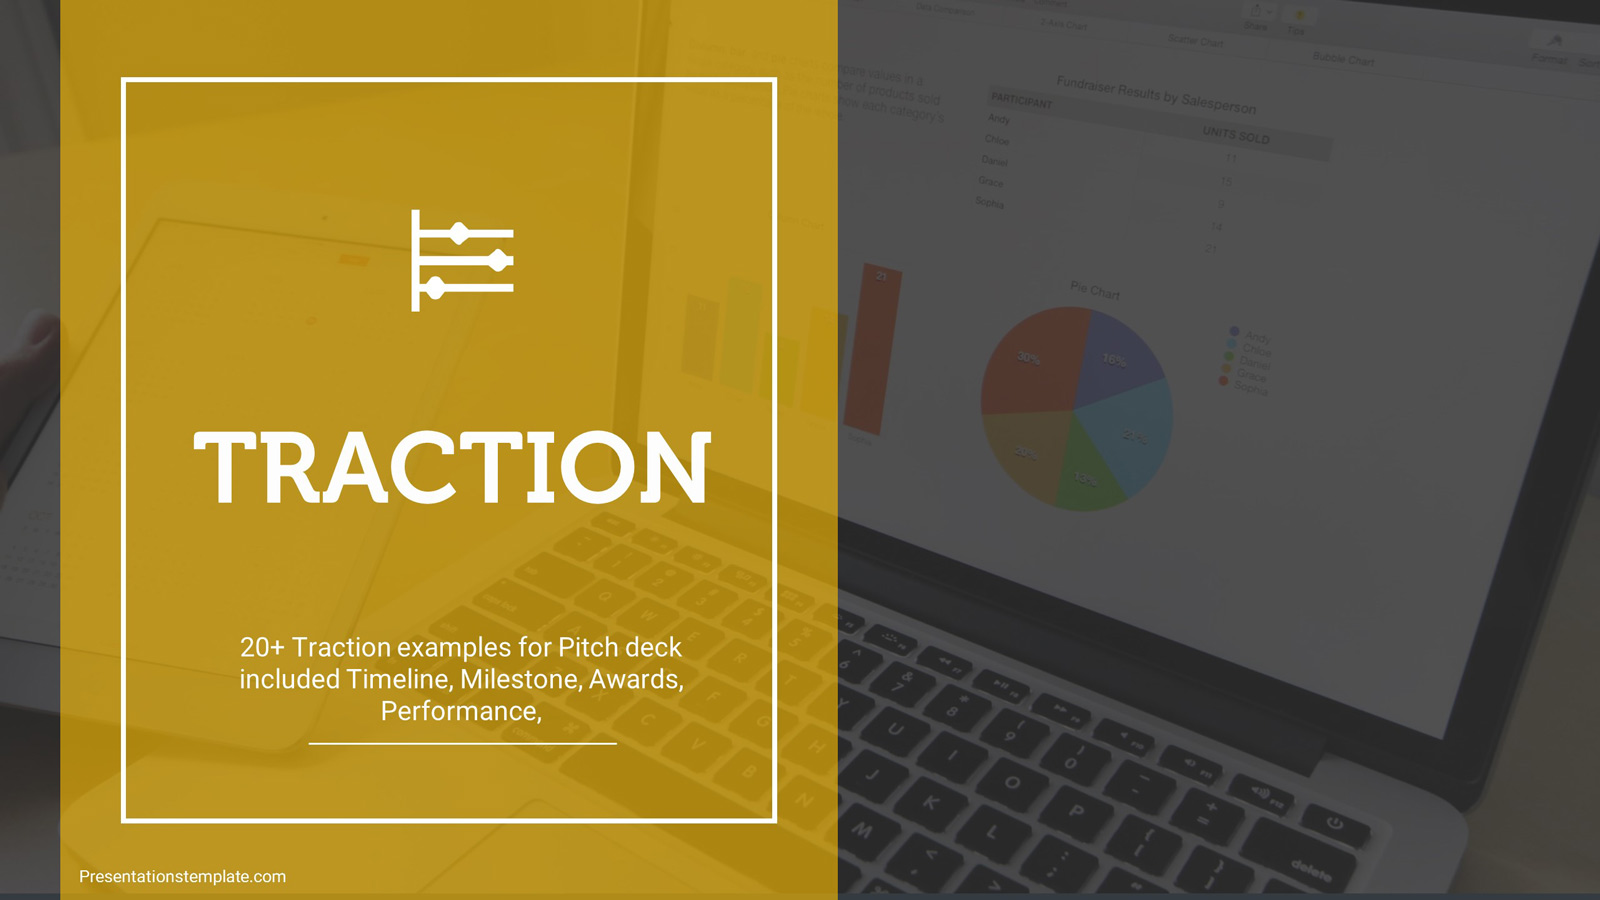 Presentations Template Free Powerpoint Presentation Templates And Pitch Deck Templates